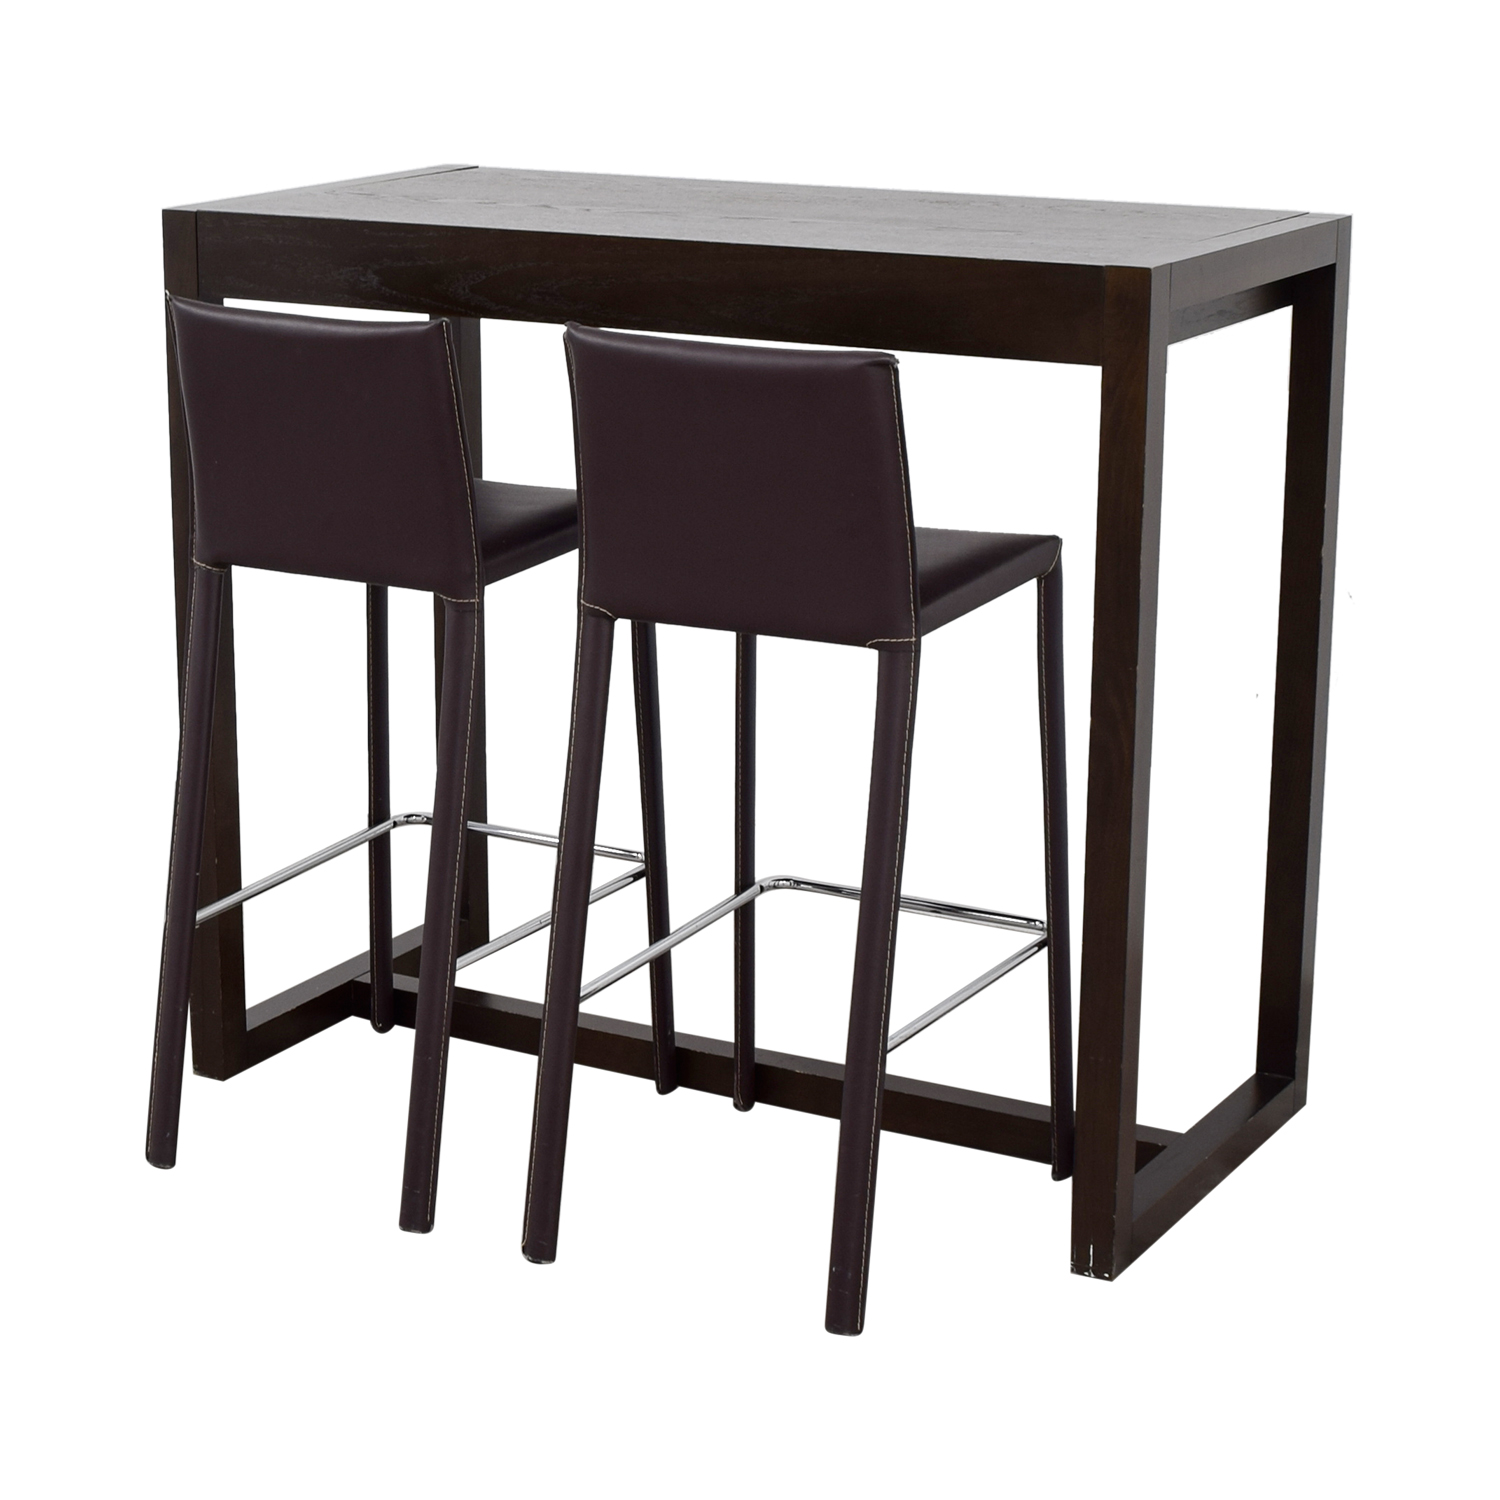 88 off west elm west elm bar table with bar stools tables west elm west elm bar table with bar stools dimensions watchthetrailerfo